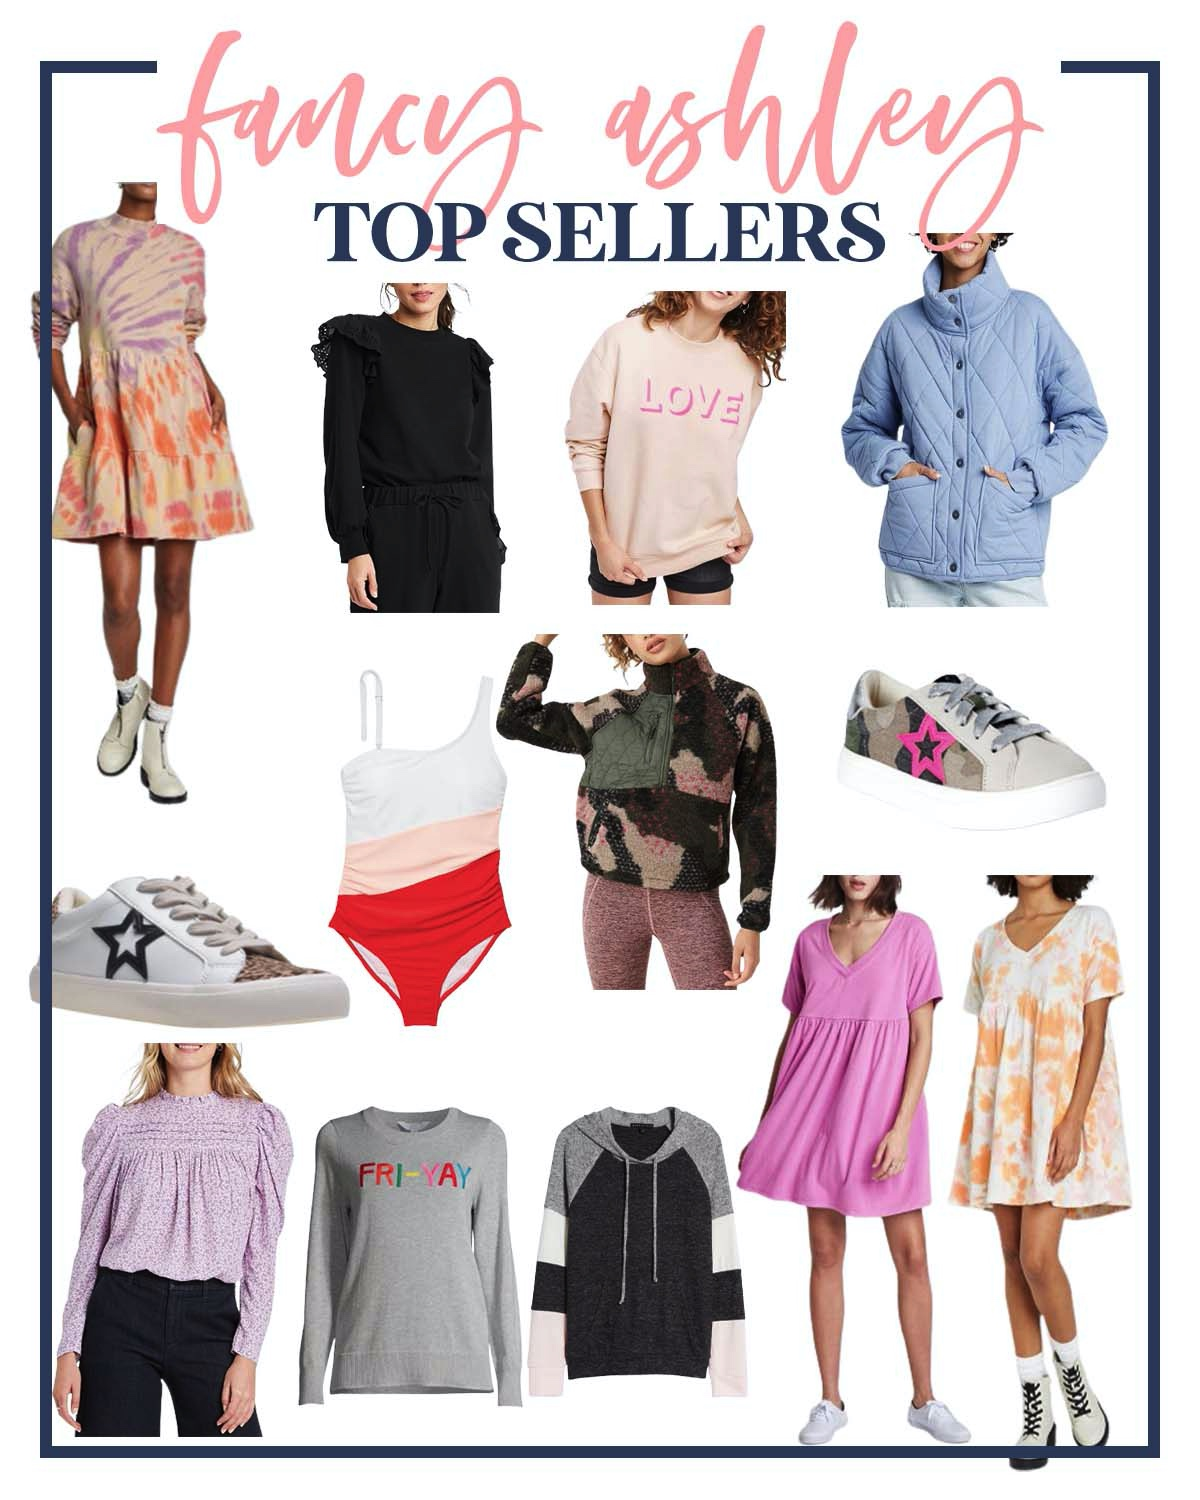 Top Sellers by popular Houston fashion blog, Fancy Ashley: collage image of a tie dye dress, blue sweater set, love sweatshirt, blue quilted jacket, star print white sneakers, red white and pink strip swimsuit, camo sherpa pullover, pink star and camo sneakers, purple long sleeve smock top, Fri-Yay grey sweater, pink blue white and pink hoodie, pink and orange tie dye swing dress.